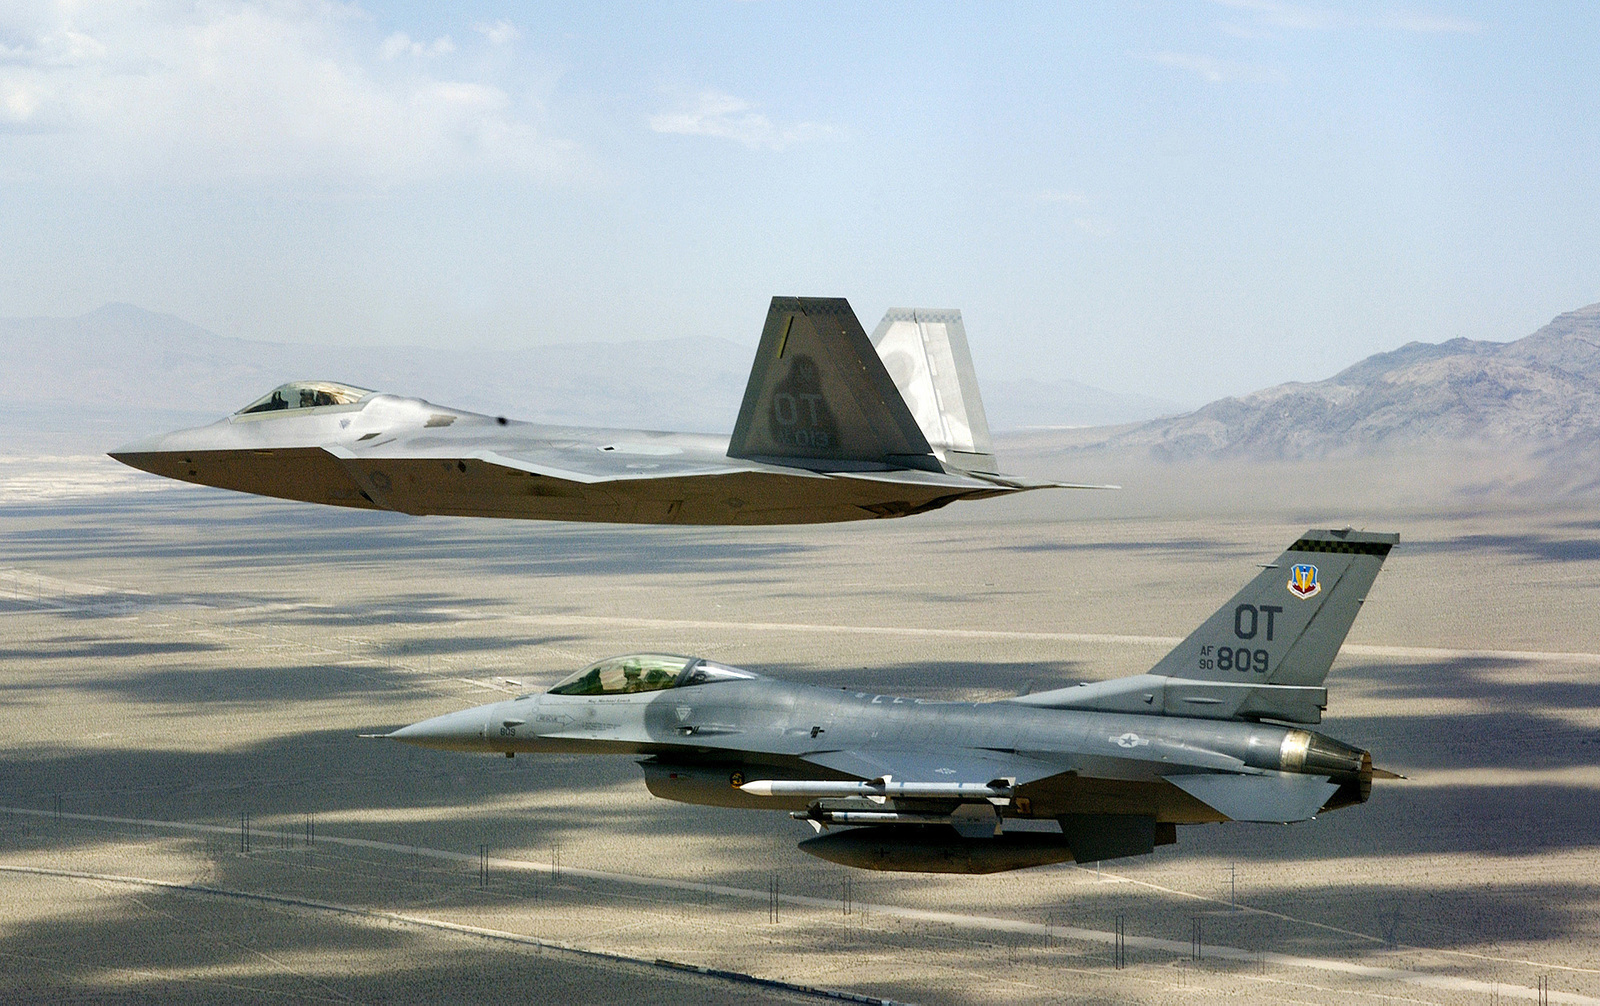 A US Air Force (USAF) F/A-22 Raptor flown by USAF Major (MAJ) David Thole, 422nd Test and Evaluation Squadron (TES), Nellis Air Force Base (AFB), Nevada (NV), flies fingertip formation on a training mission alongside an USAF F-16 Fighting Falcon, flown by USAF MAJ Alex Grynkewich, 53rd Test and Evaluation Group (TEG), Nellis AFB, NV